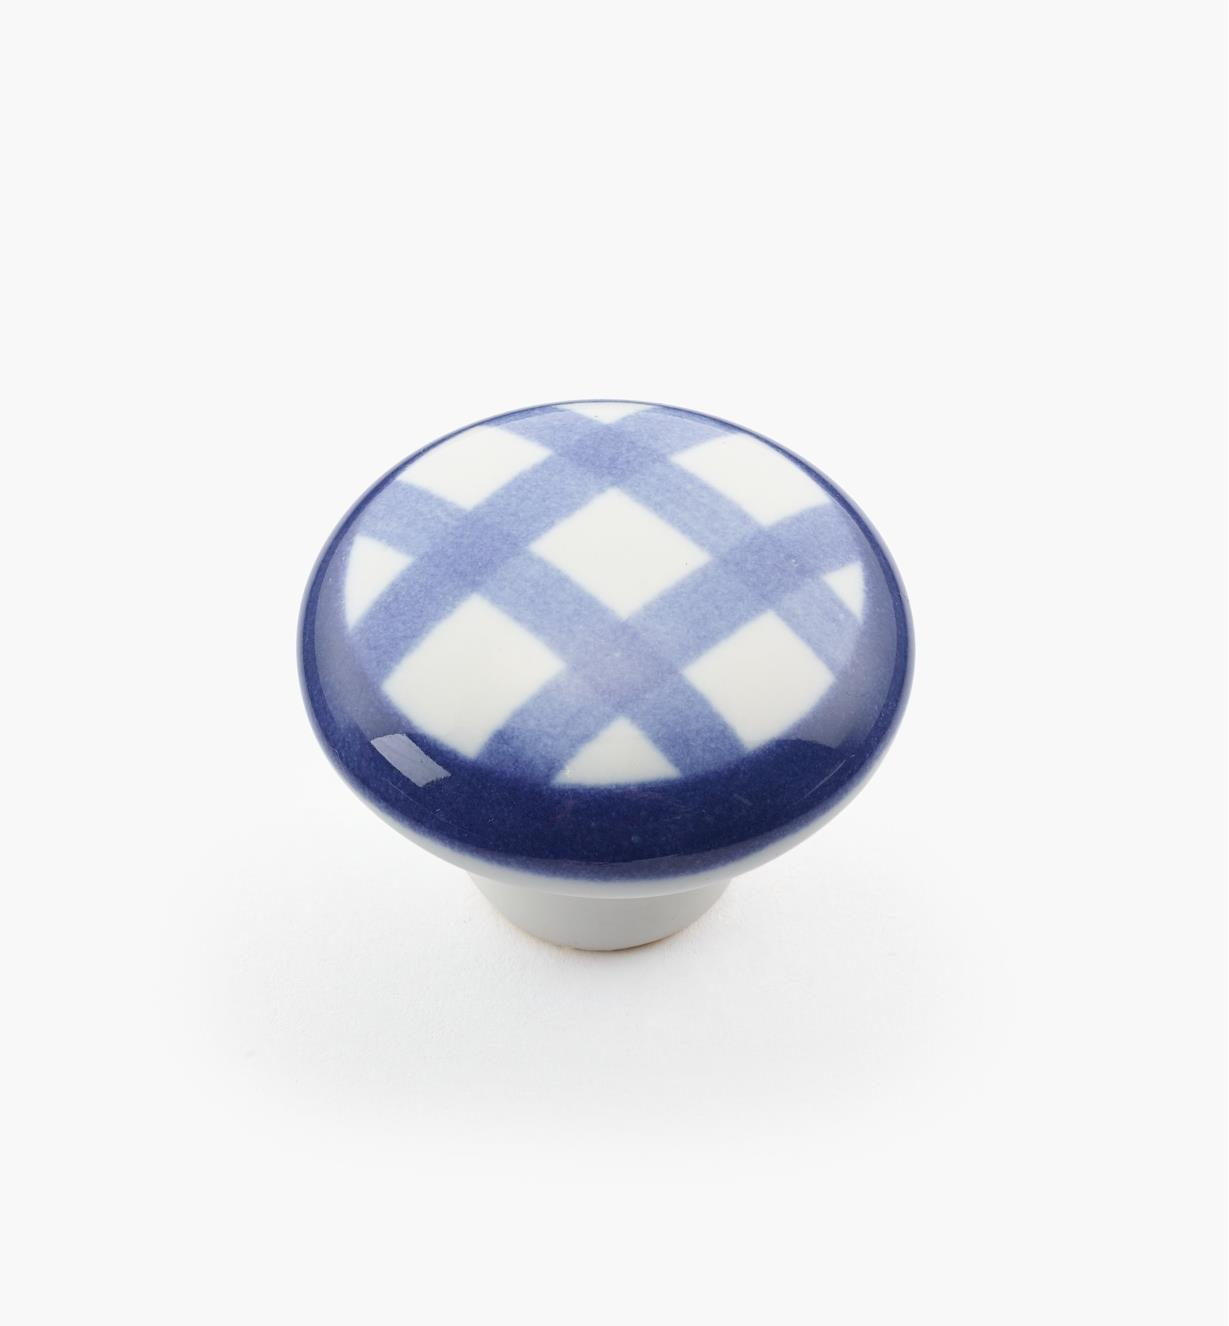 "00W5236 - 1 1/4"" x 7/8"" Blue Checkered Knob"